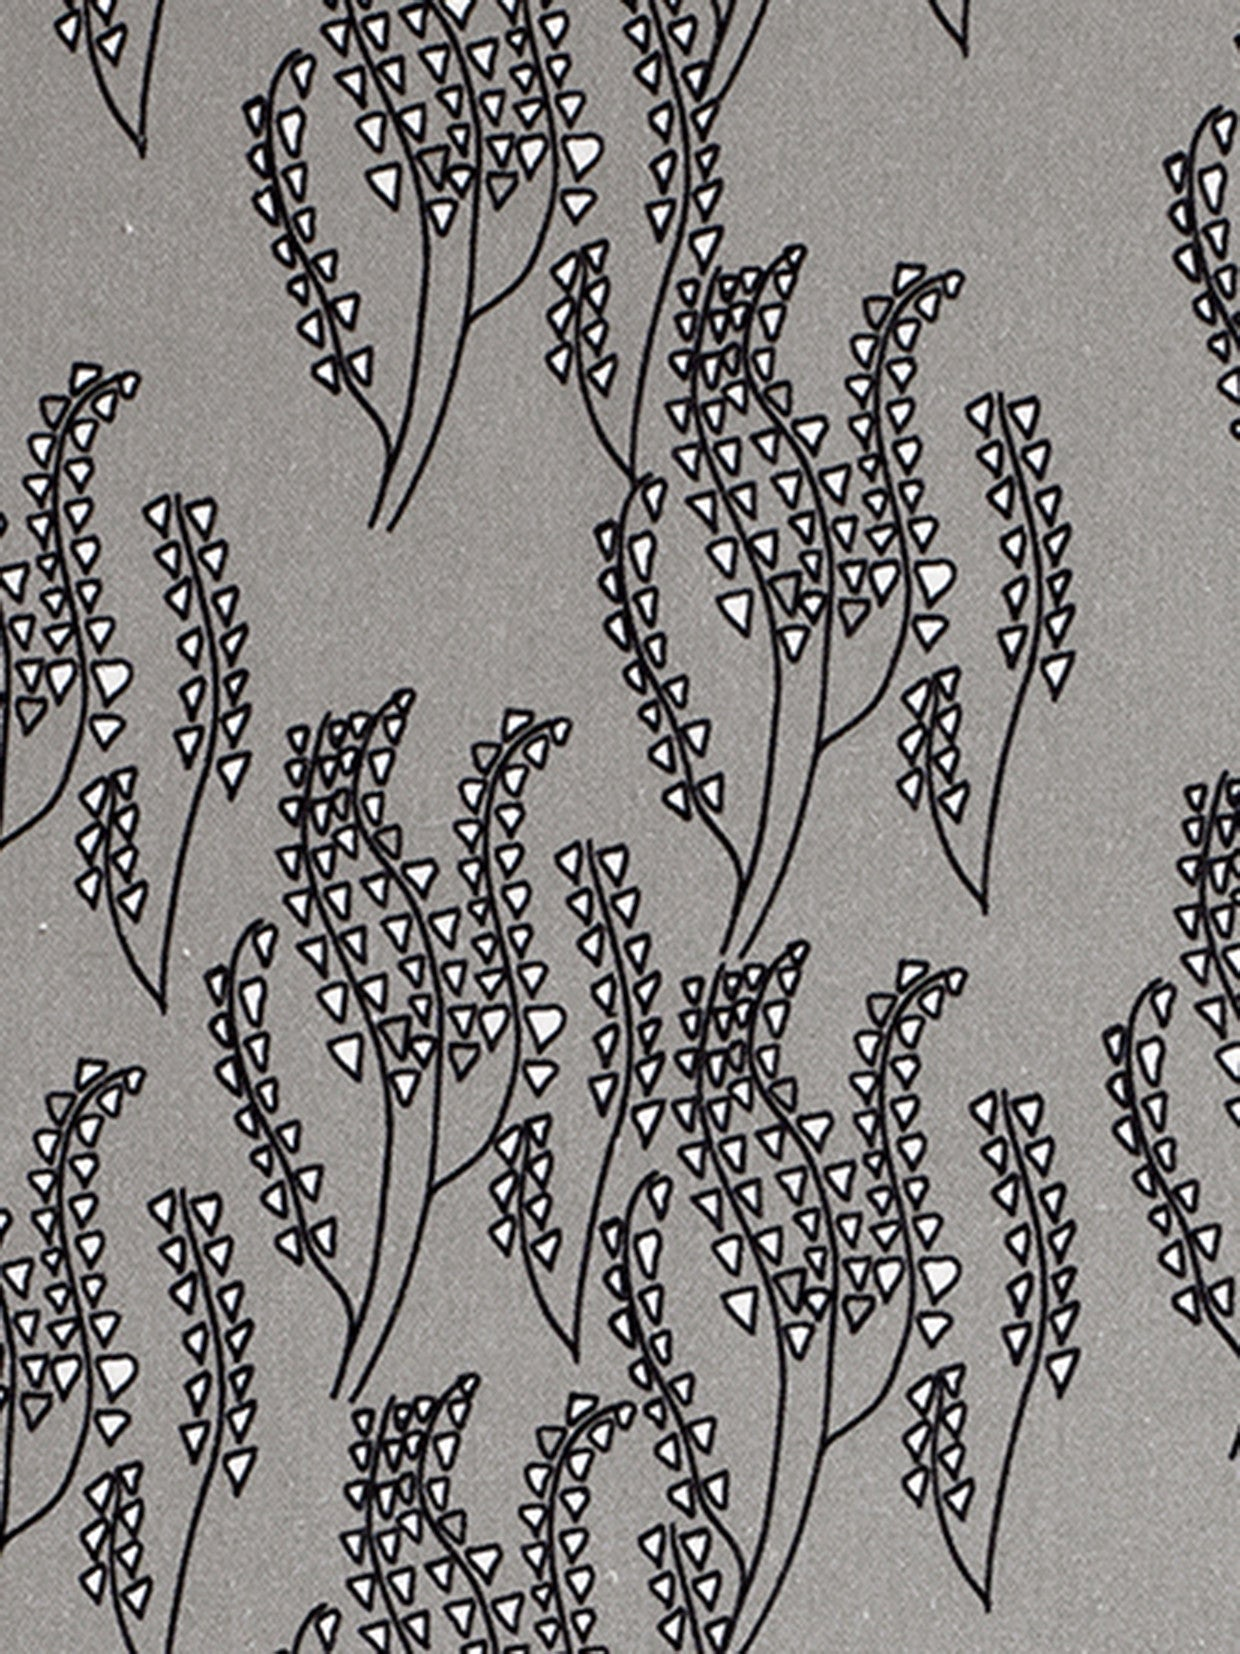 Maricopa Graphic Floral Pattern Cotton Linen Home Decor Fabric by the yard or by the meter for curtains, blinds, upholstery in Light Dove Grey - Black ships from Canada worldwide (USA)